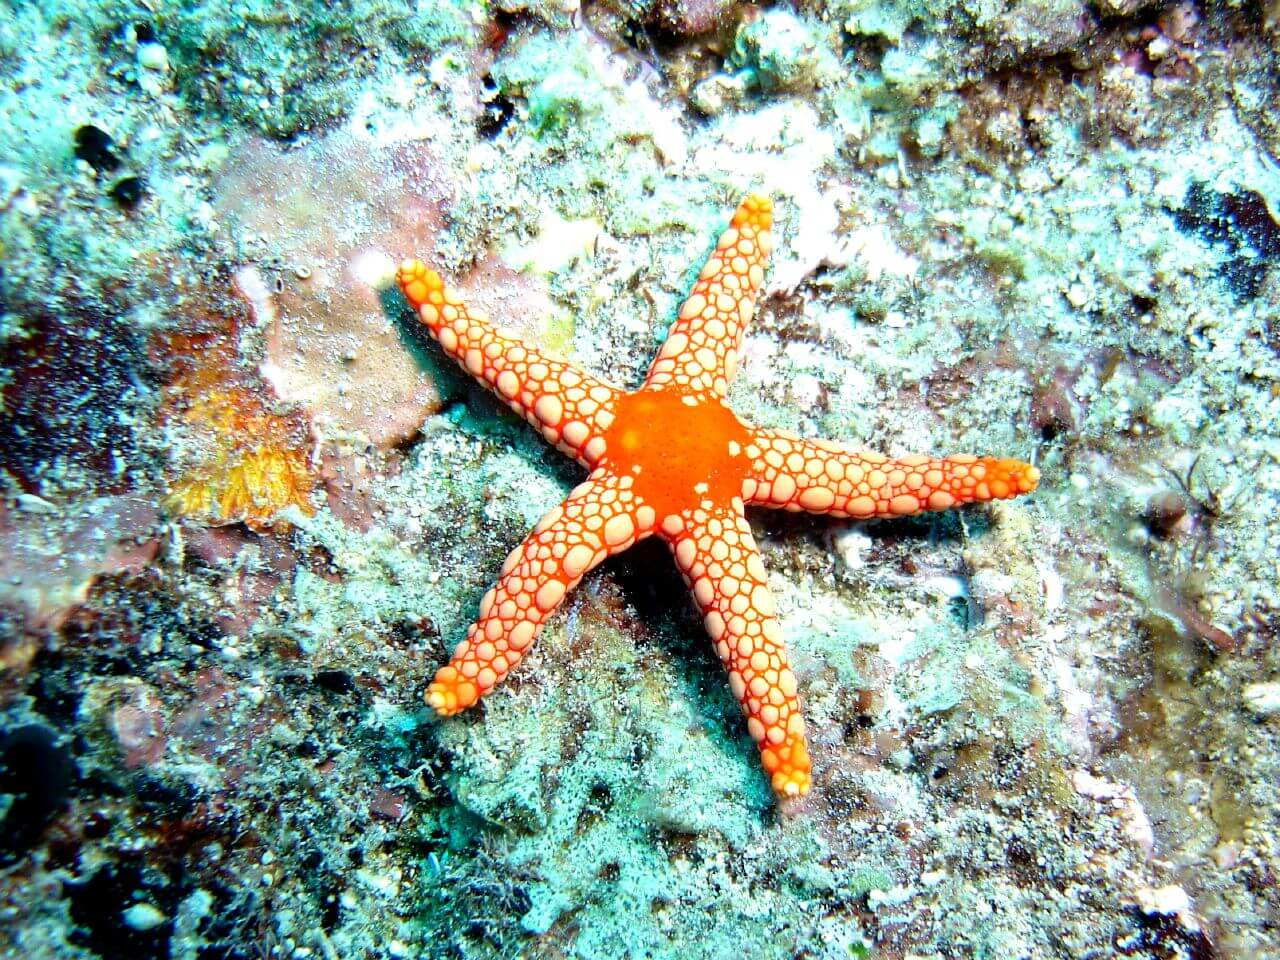 incredible collection of marine creatures